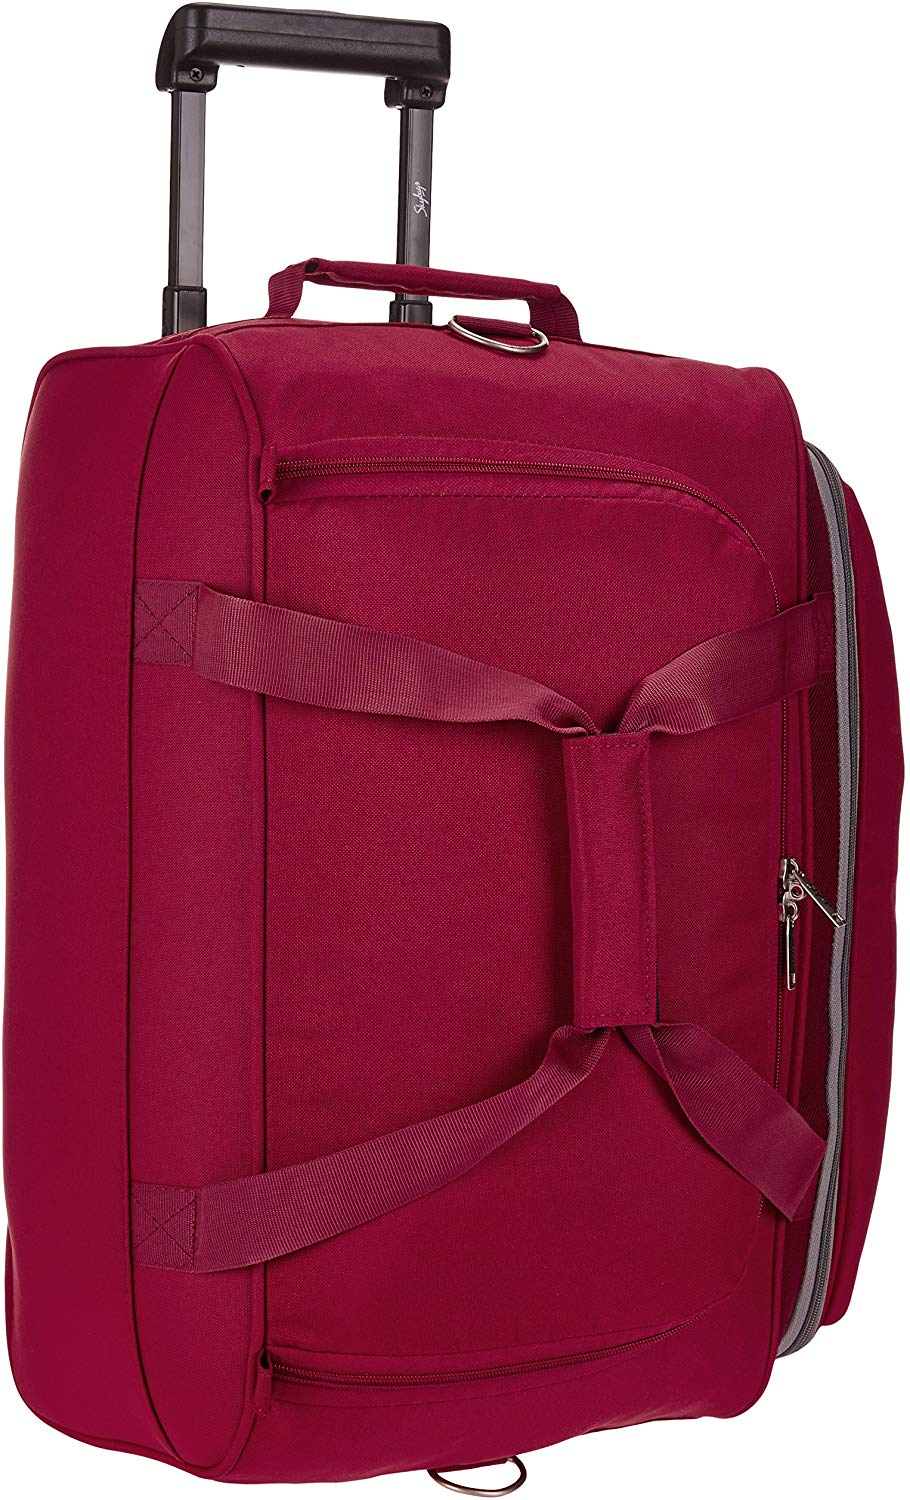 Skybags Cardiff Polyester Duffle Bag